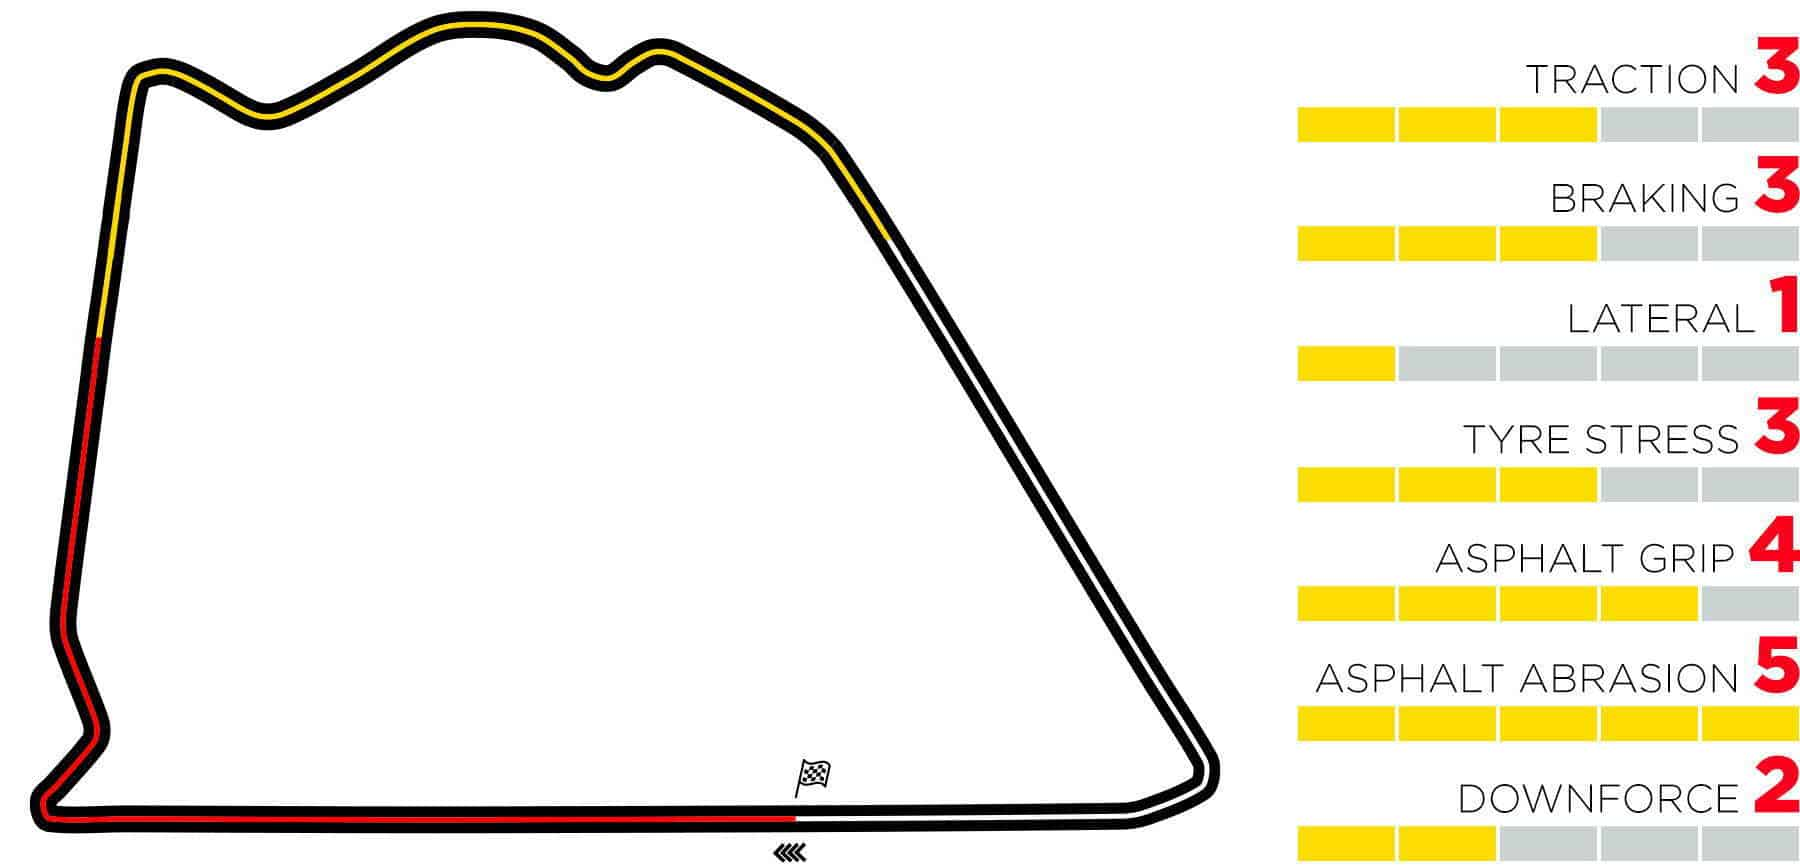 2020 Sakhir GP map with Pirelli track characteristics and sectors Photo Pirelli F1 Edited by MAXF1net